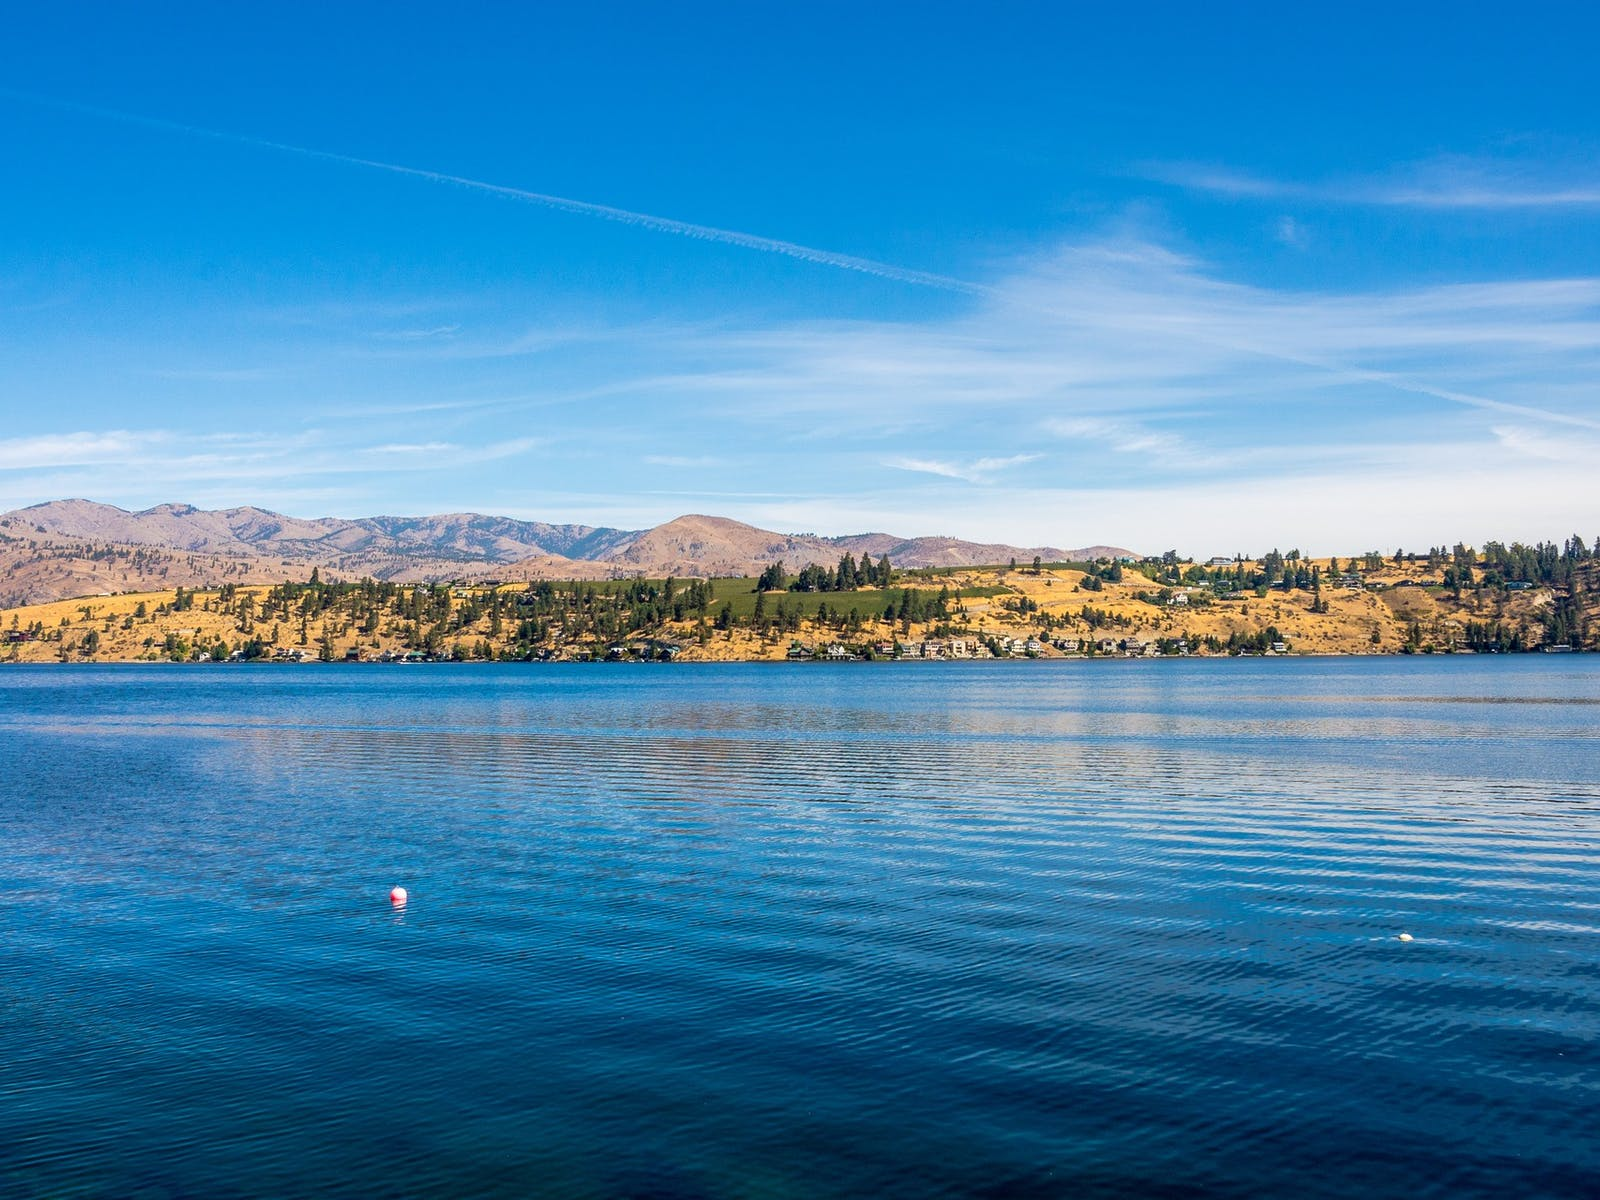 Lake Chelan surrounded by mountains